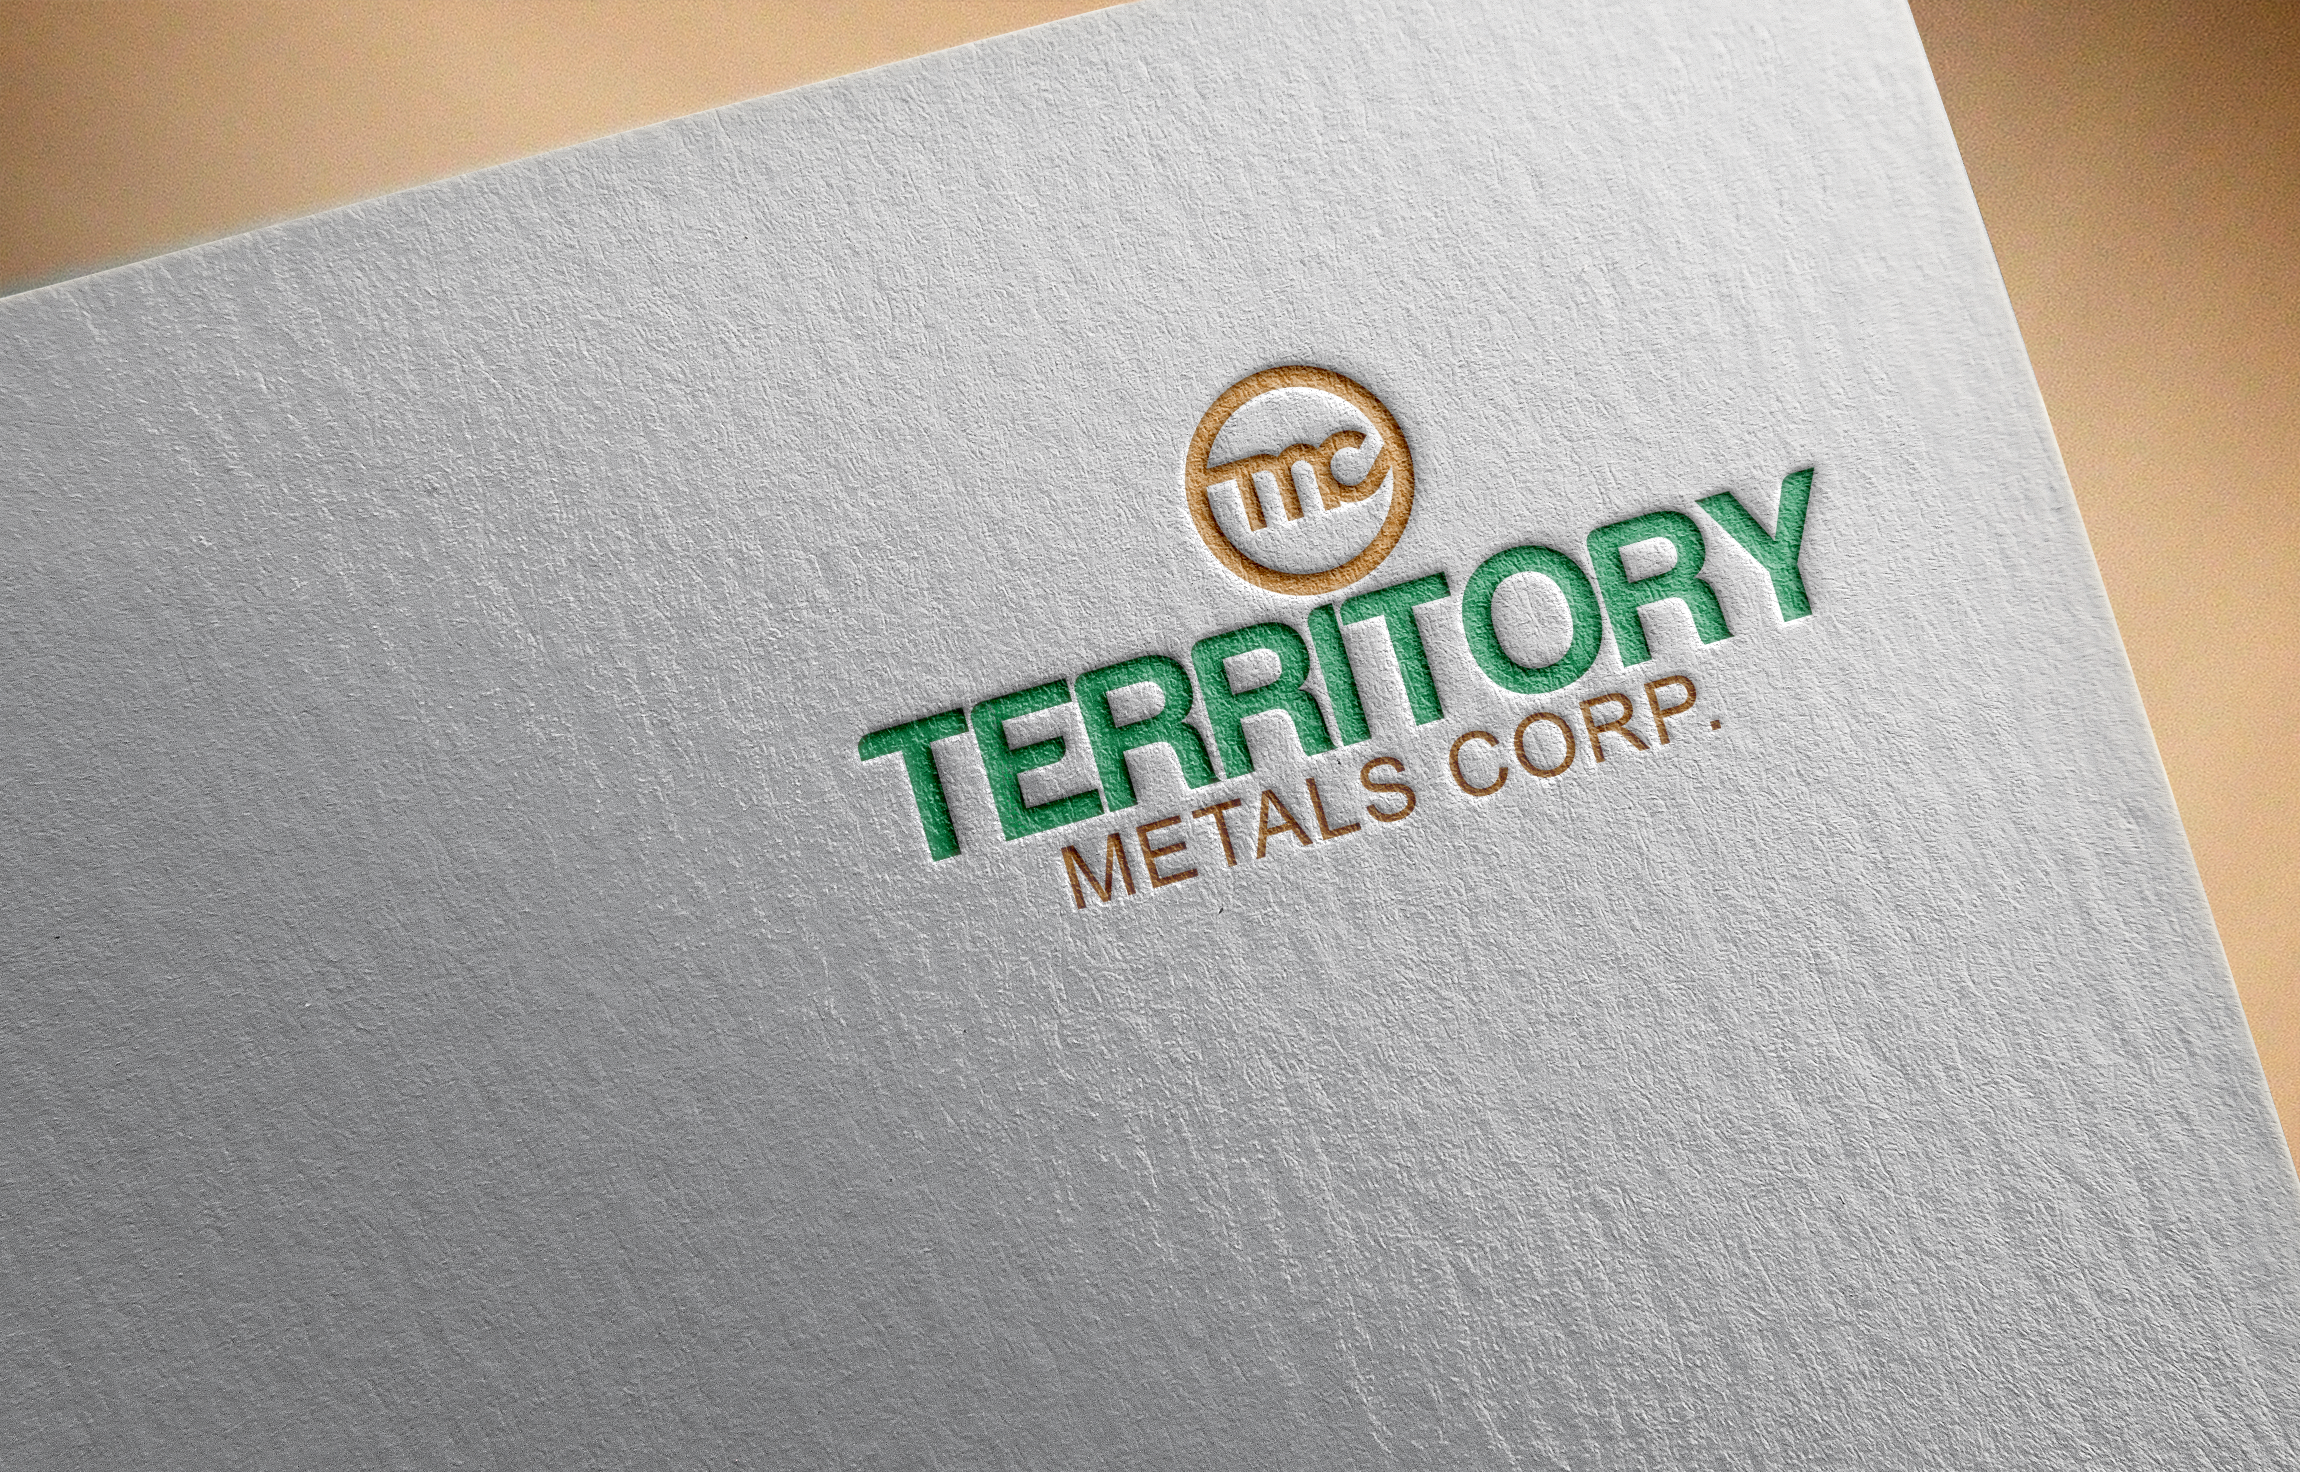 Logo Design by Ayrin Akter - Entry No. 149 in the Logo Design Contest Unique Logo Design Wanted for Territory Metals Corp..